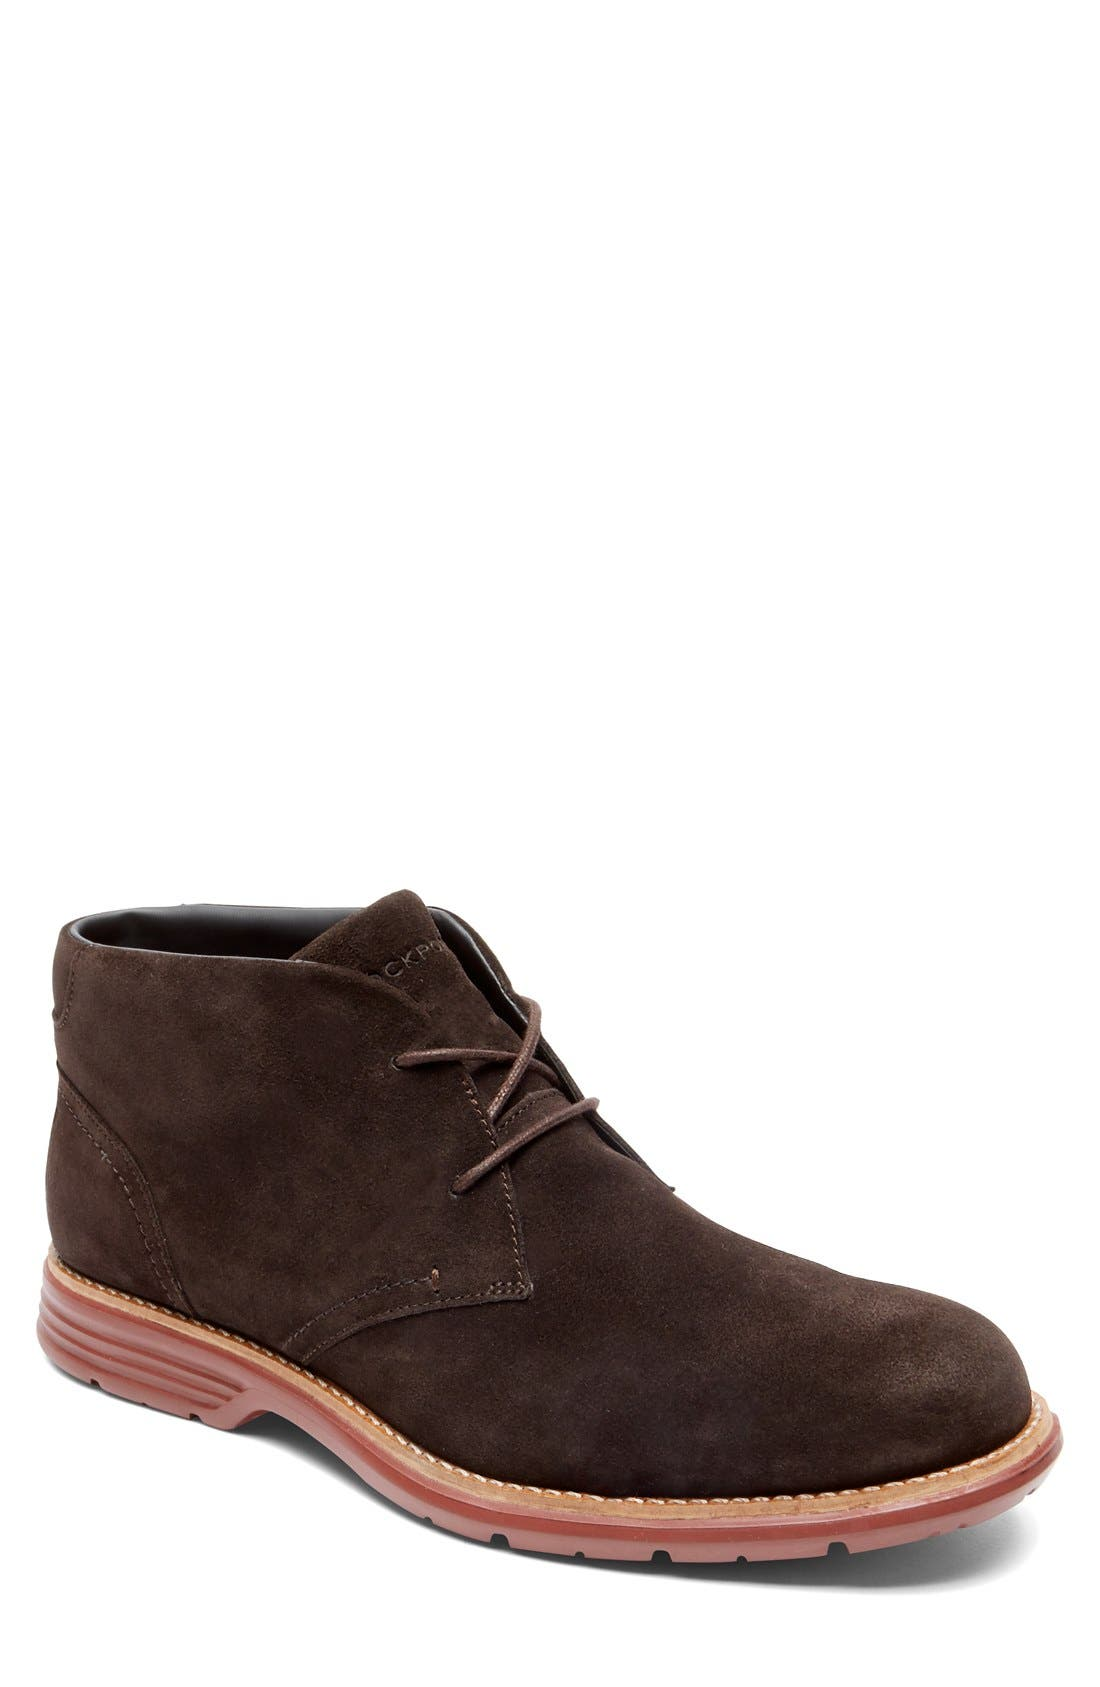 Main Image - Rockport 'Total Motion Fusion' Chukka Boot (Men)